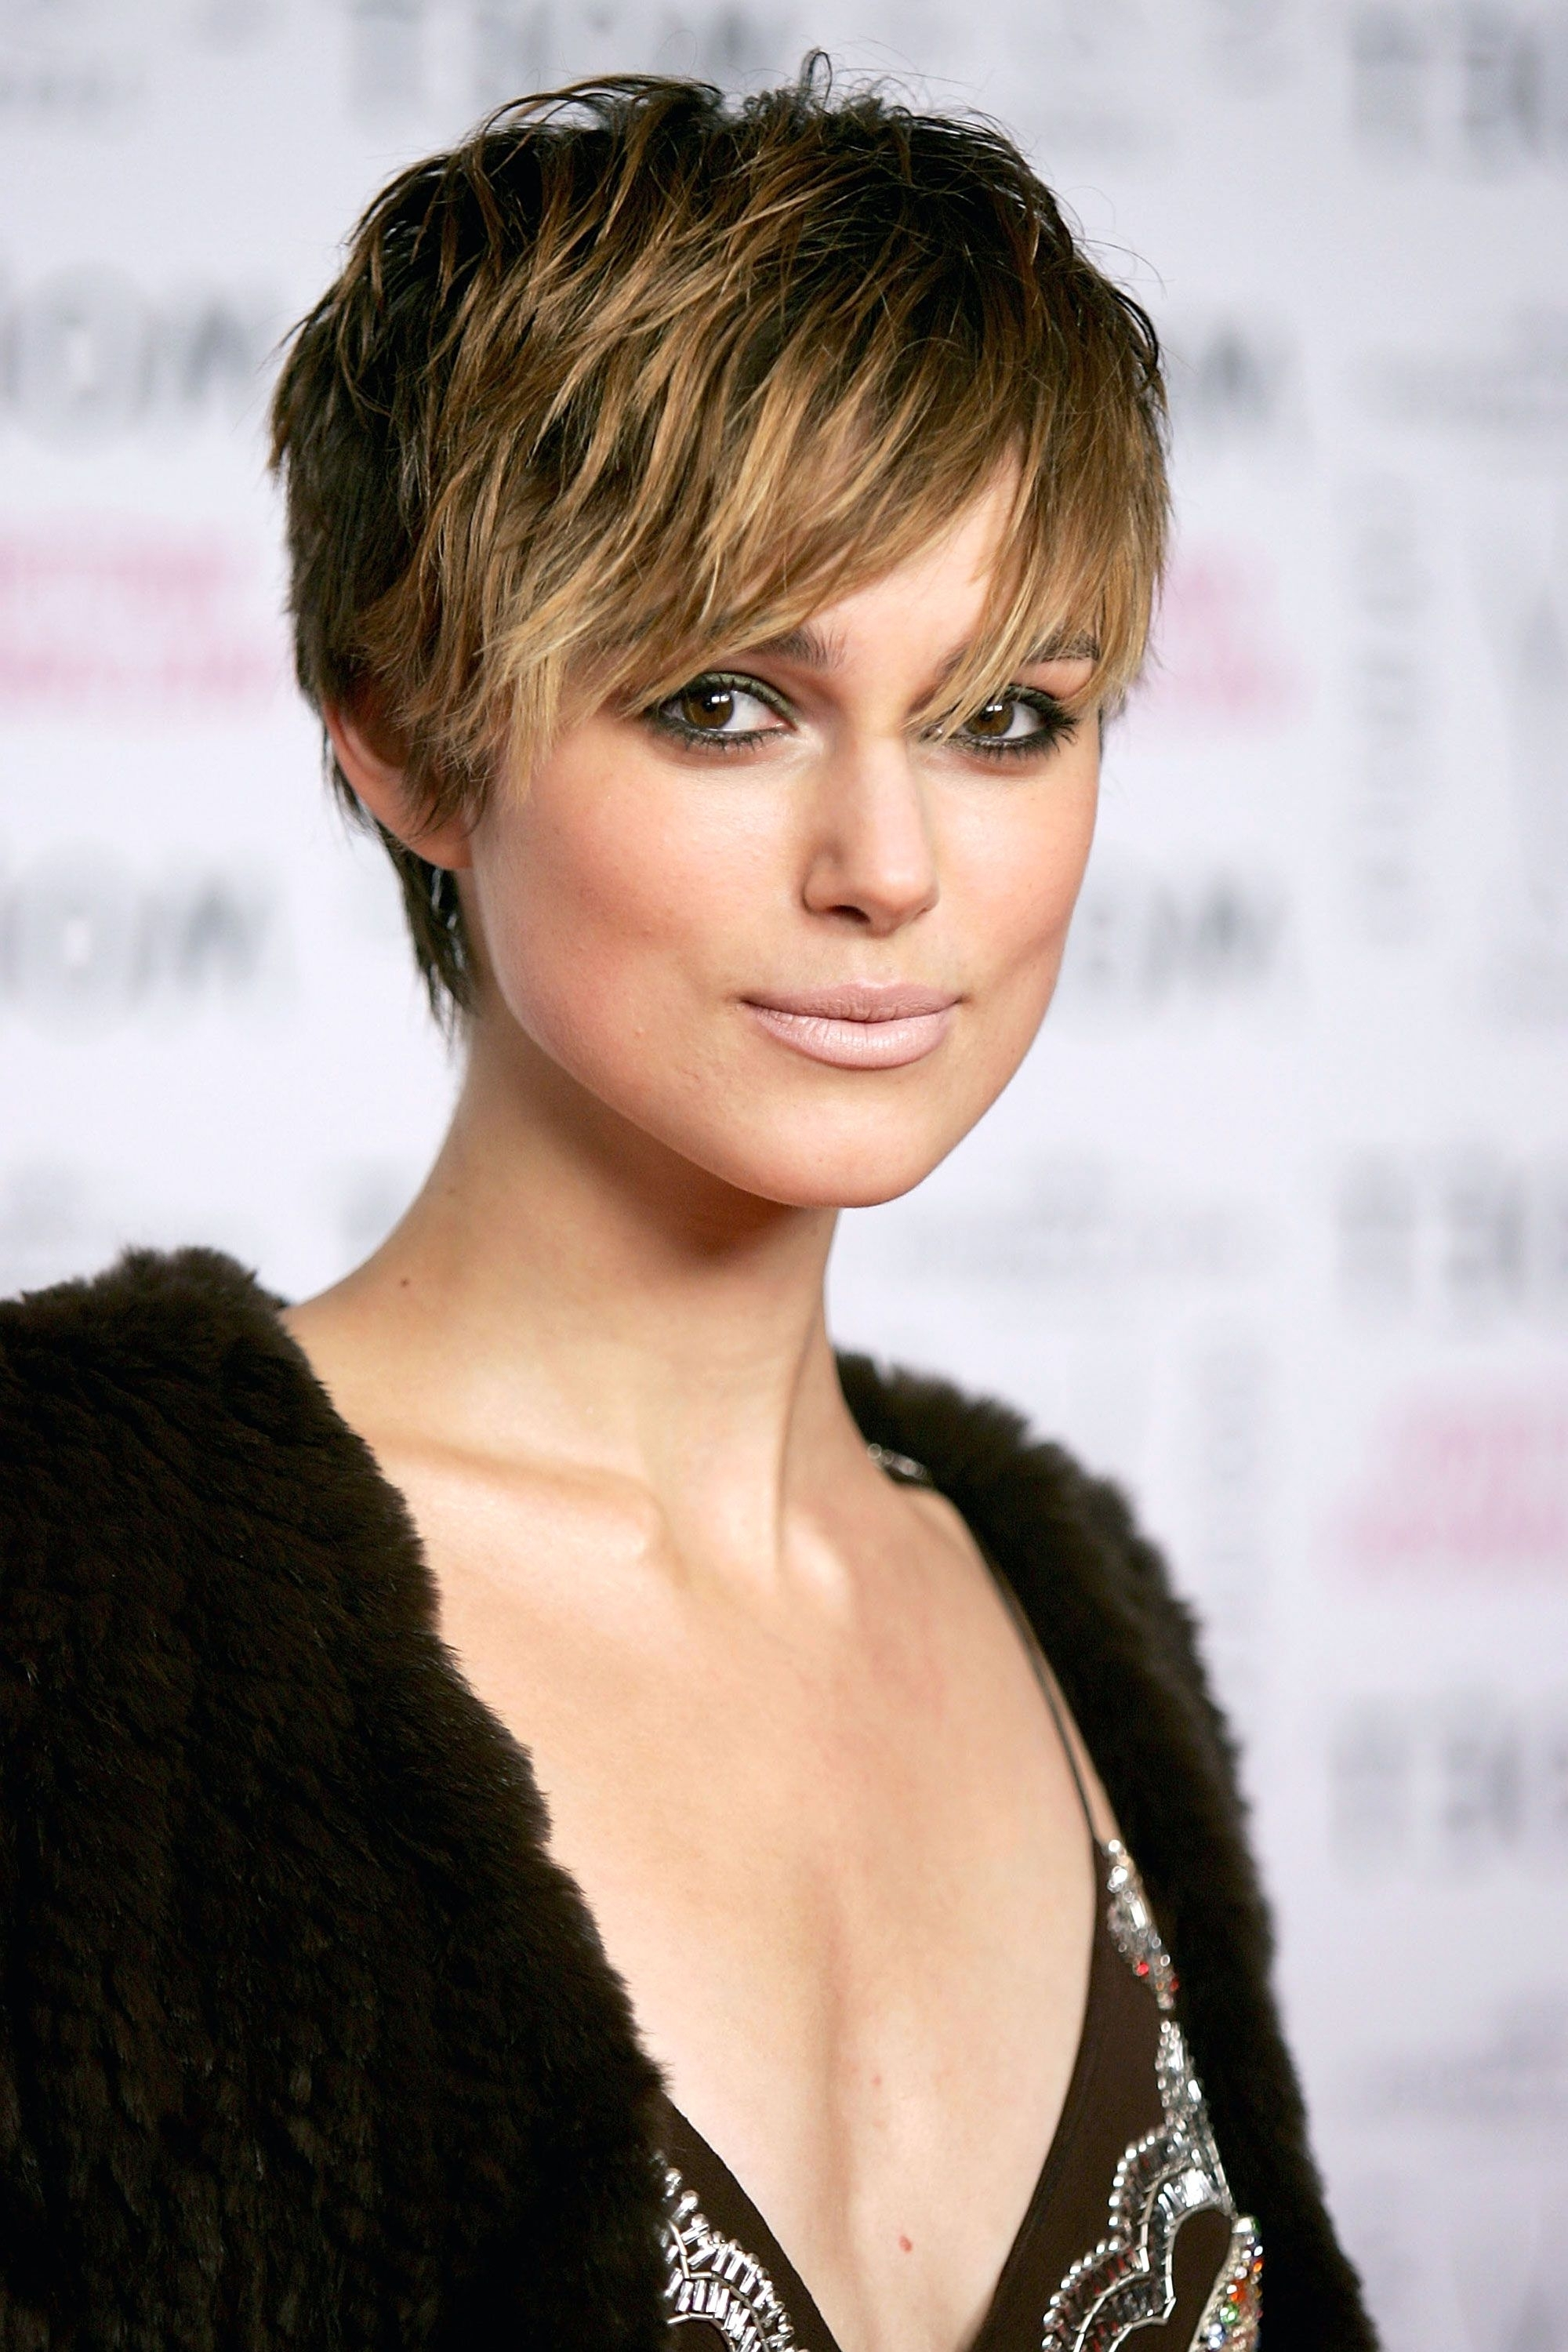 50+ Pixie Cuts We Love For 2018 – Short Pixie Hairstyles From With Regard To Most Current Sassy Undercut Pixie Hairstyles With Bangs (View 6 of 20)